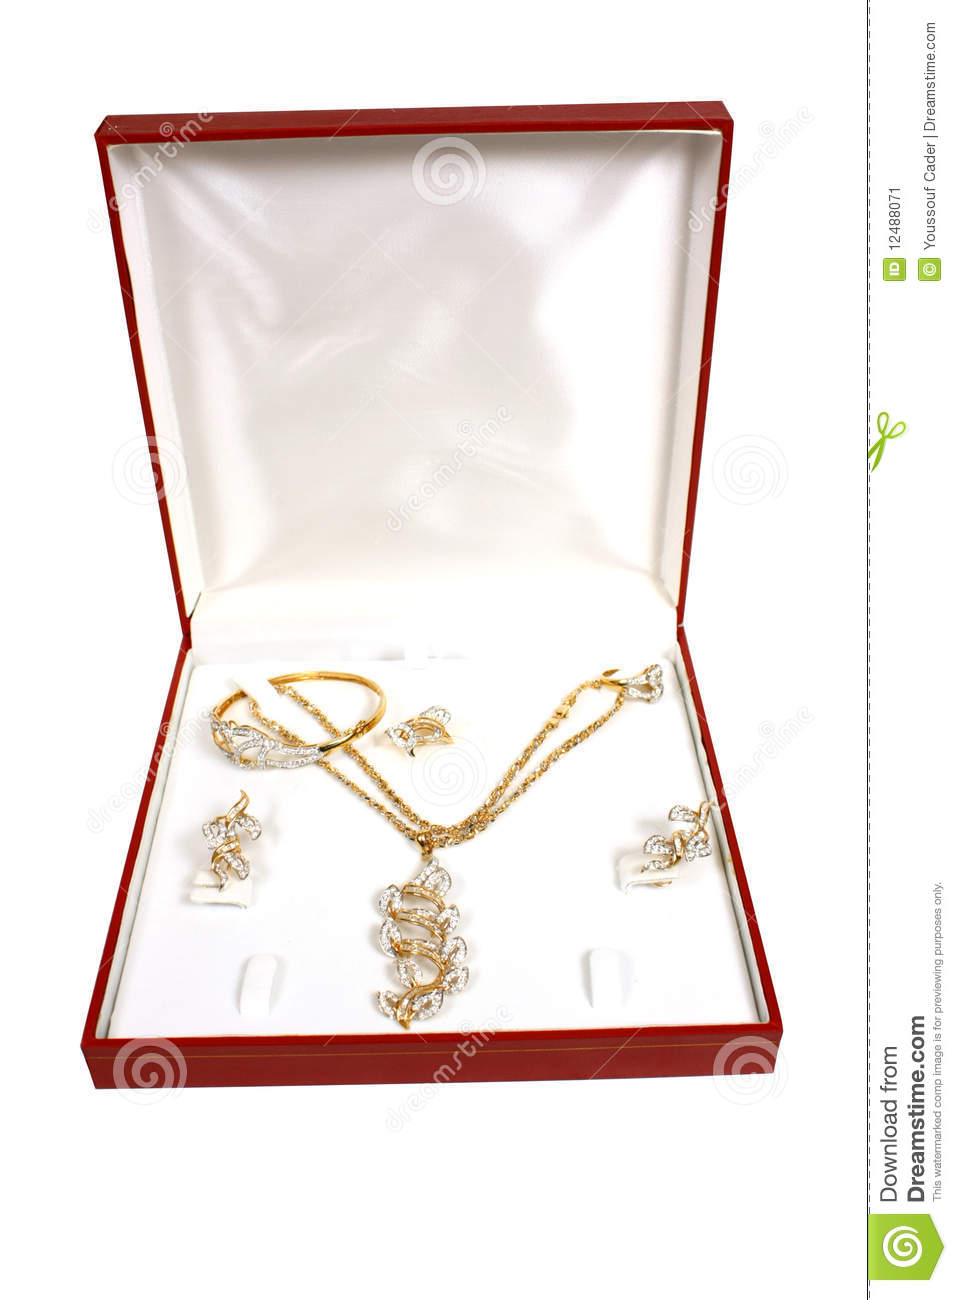 Jewellery in box stock image Image of jewelry ring 12488071